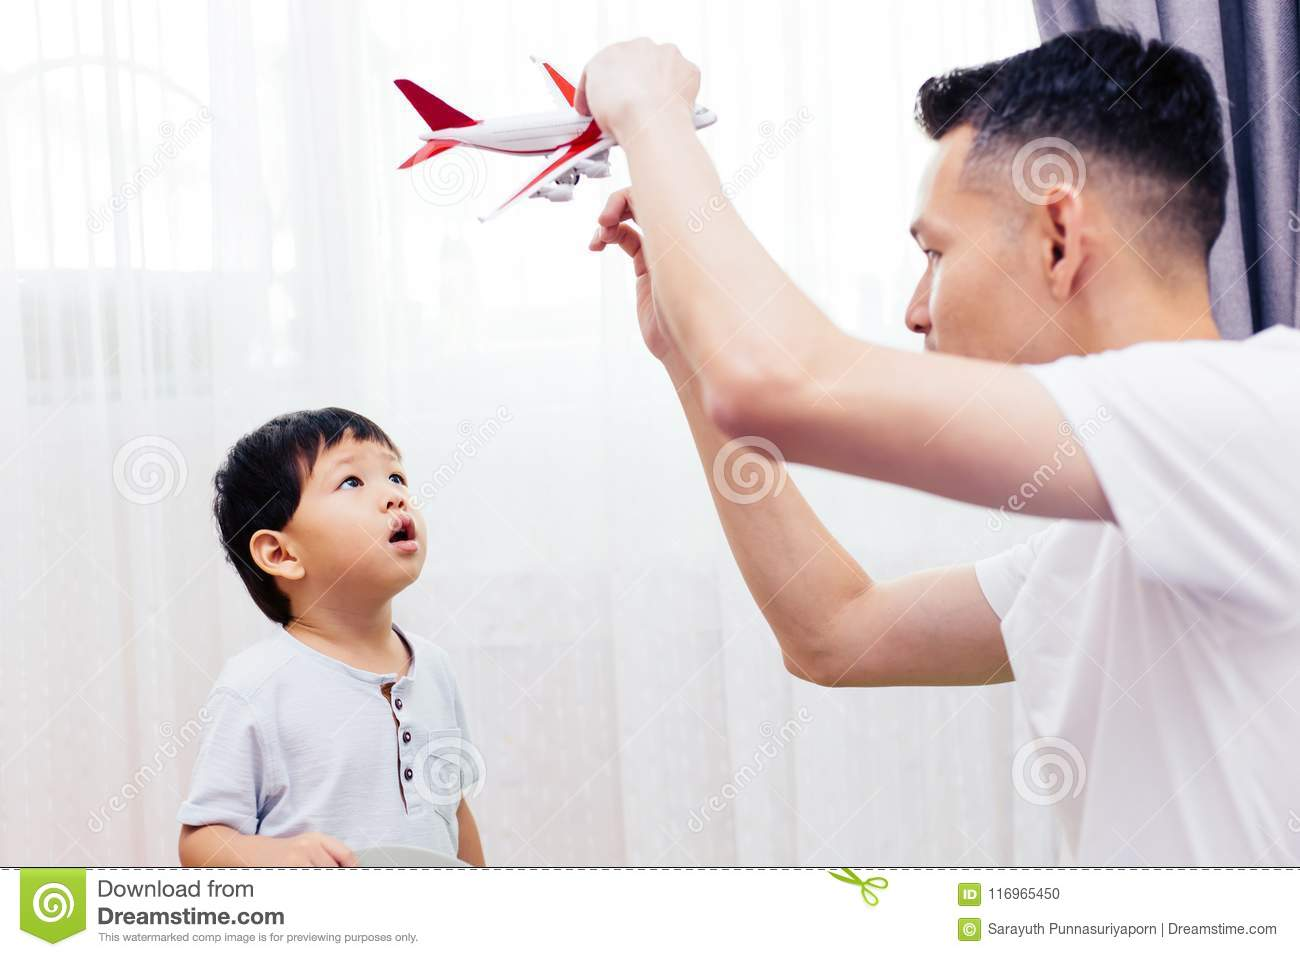 Curious kid looking at the plane toy and playing with father. Asian family playing toys together at home.